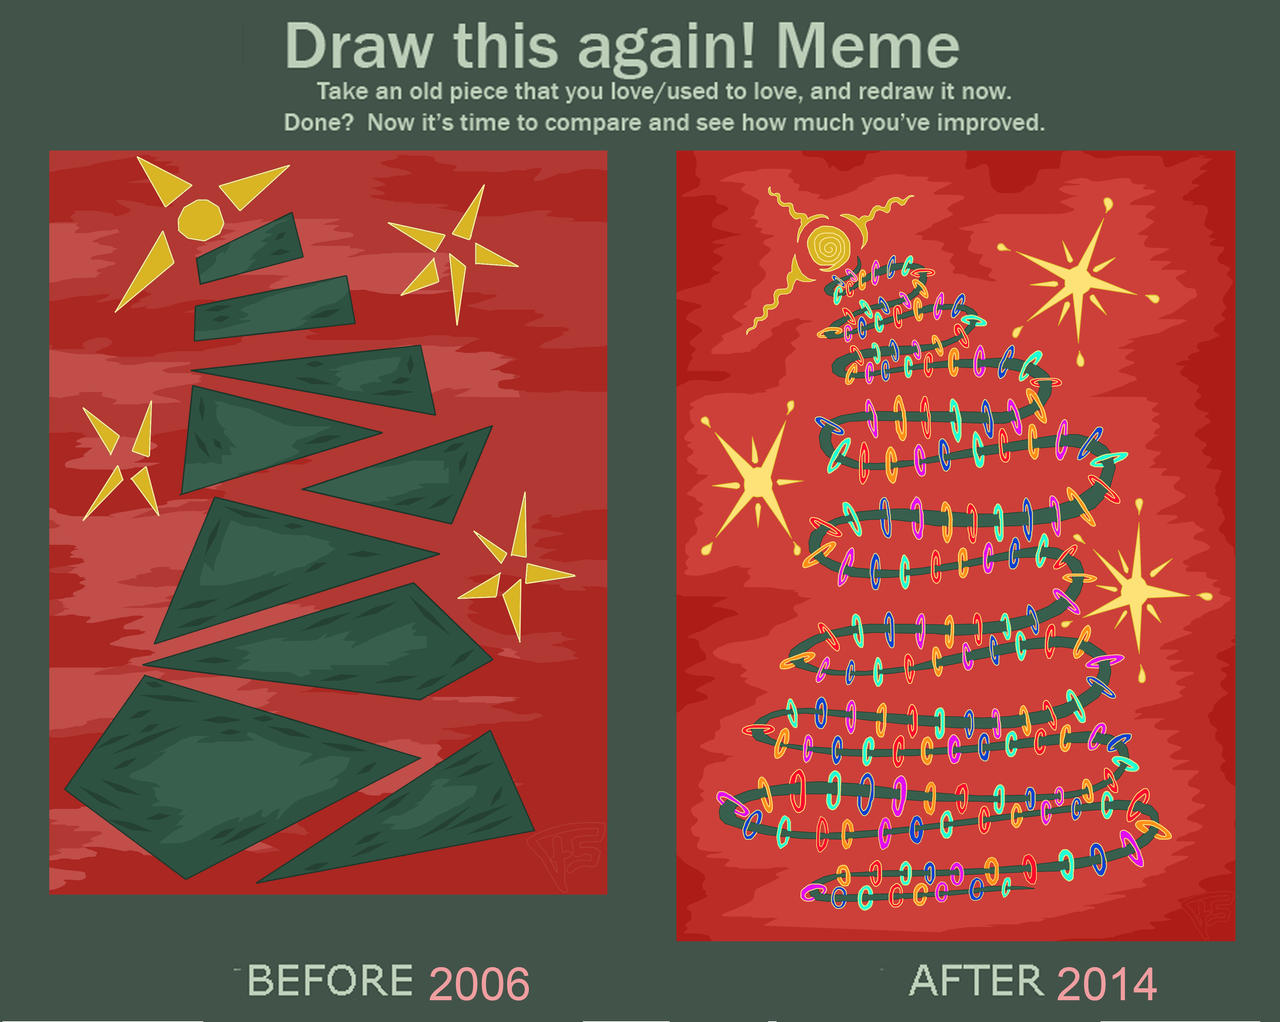 Draw Again Christmas Card Design By Brainstorm Bw Style On Deviantart